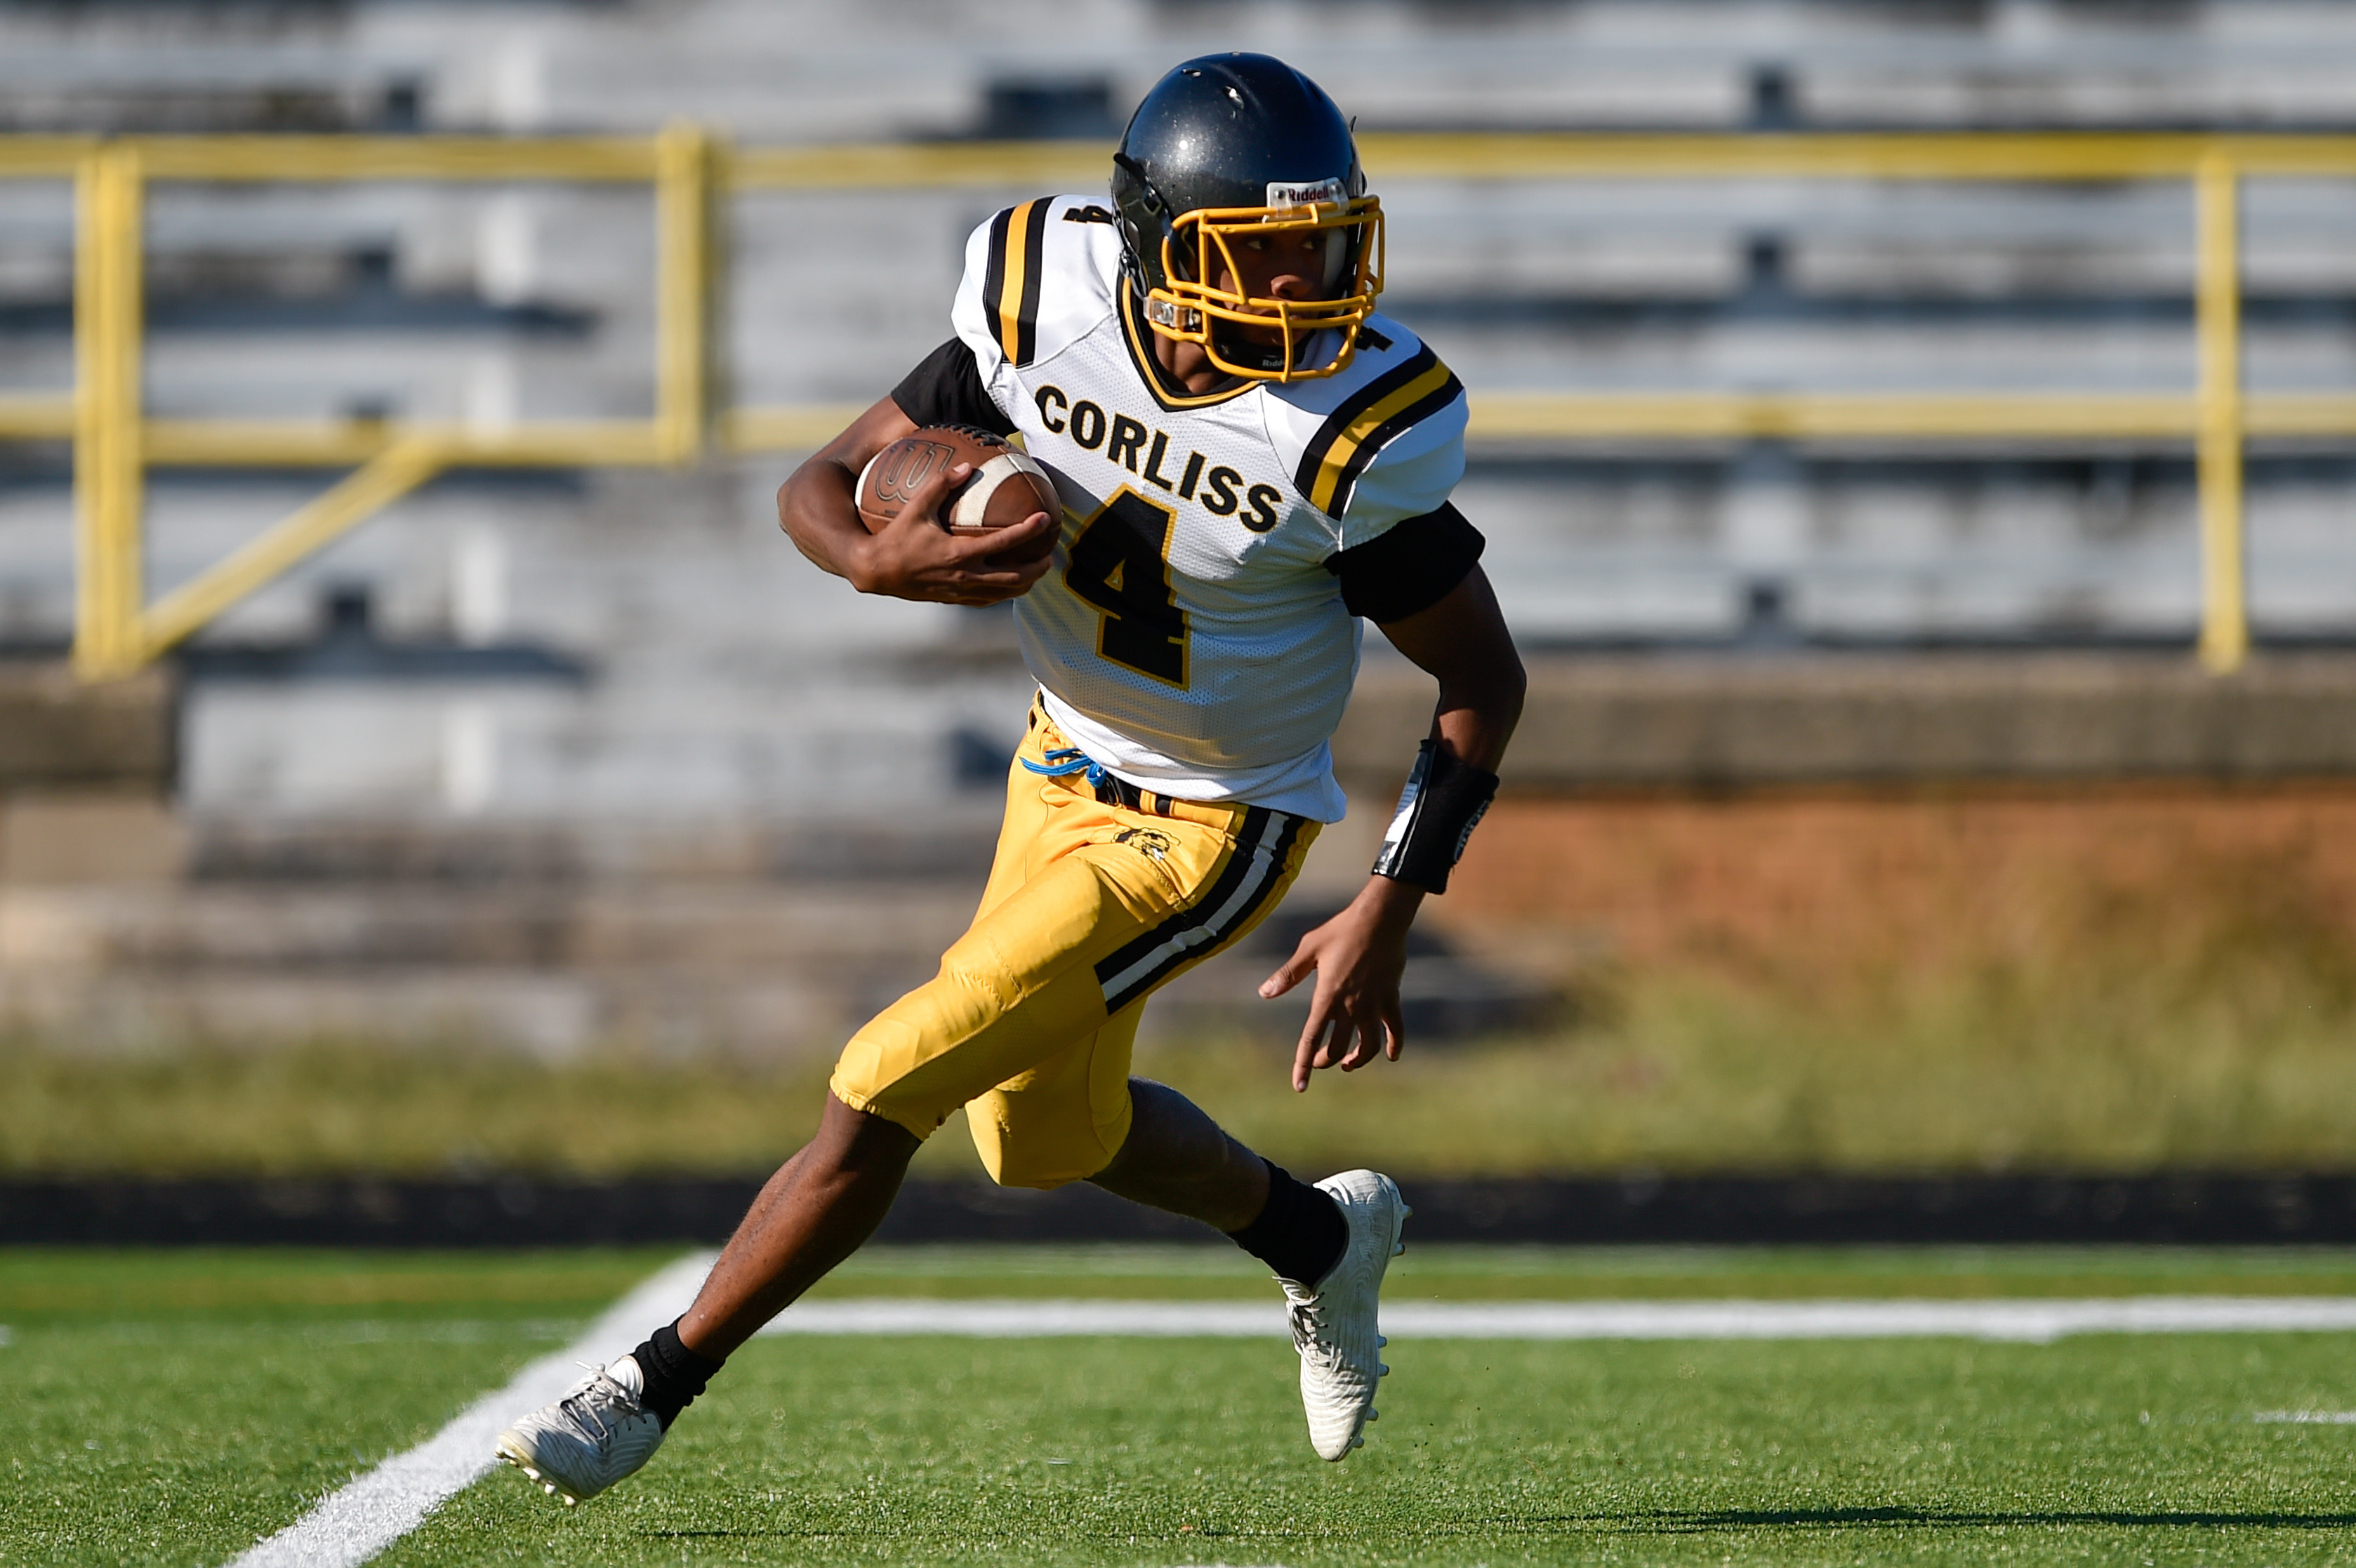 Corliss' Malachi McCLure (4) runs the ball during the game against South Shore.